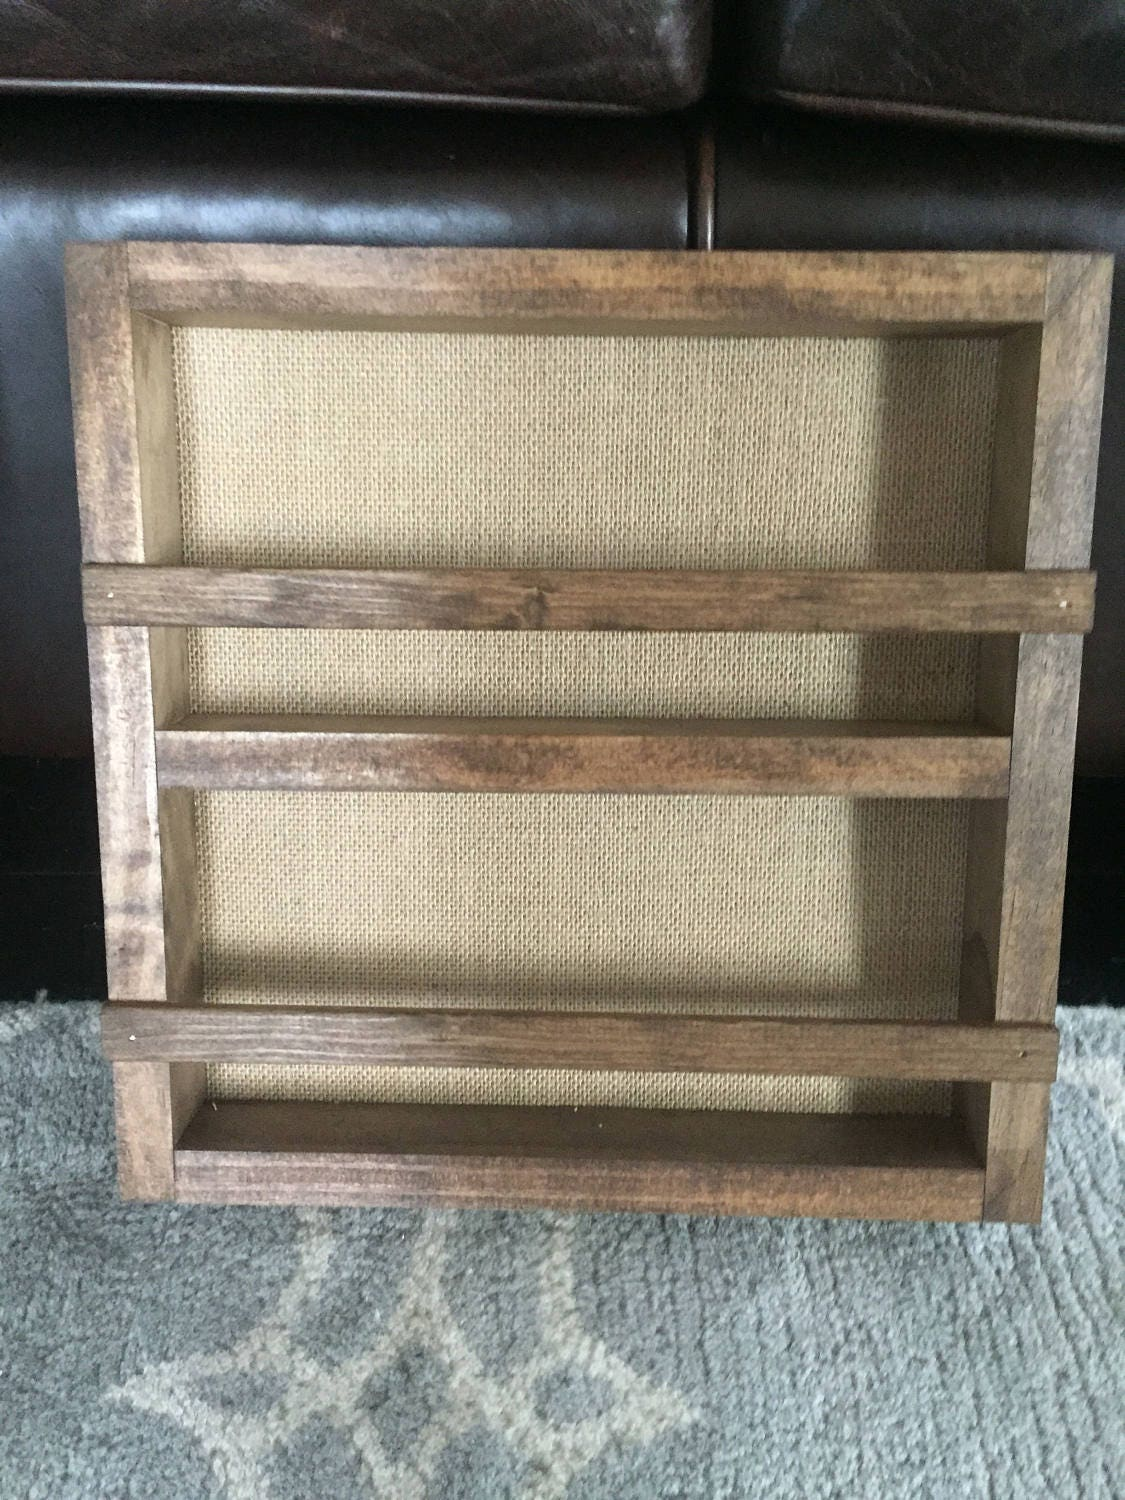 Shelves Wood Backing: Burlap And Wood Essential Oil Shelf With Cardboard Backing